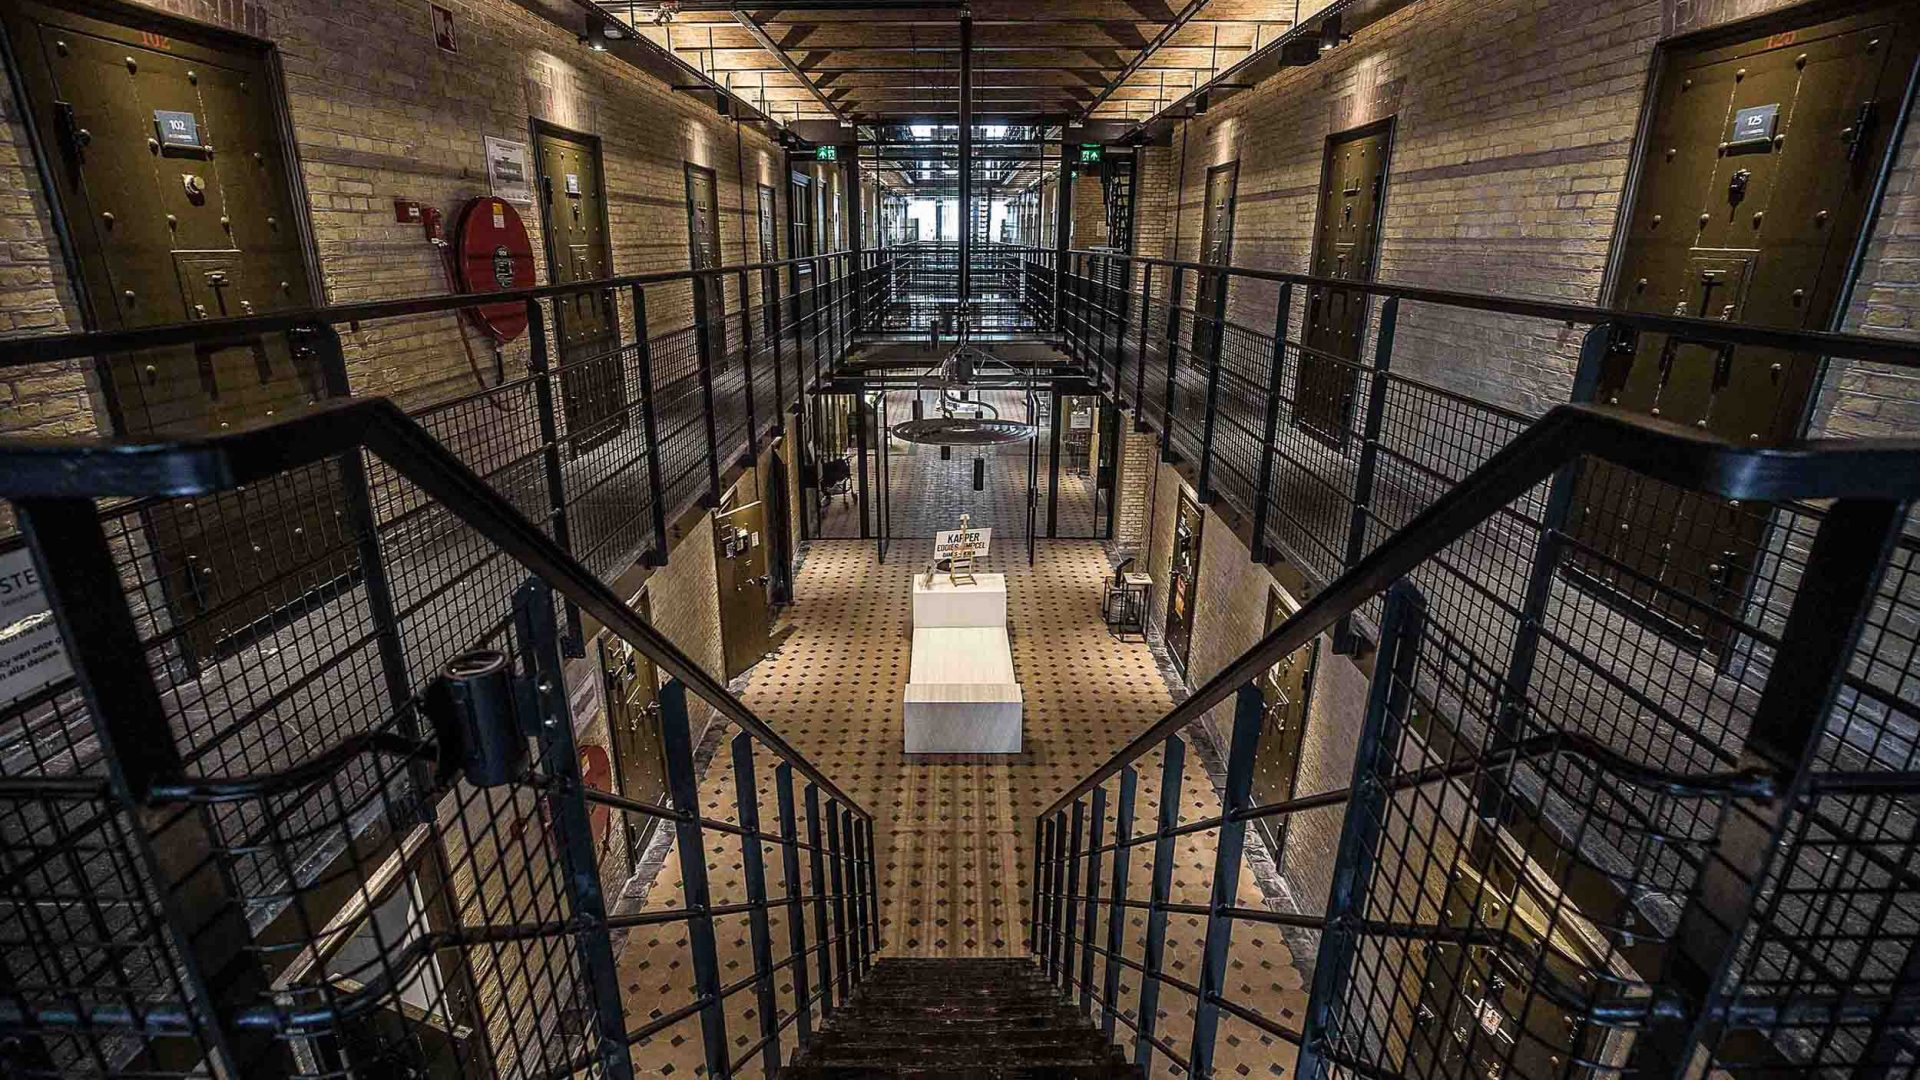 Inside Blookhuispoort arts and culinary center in what was the town prison.